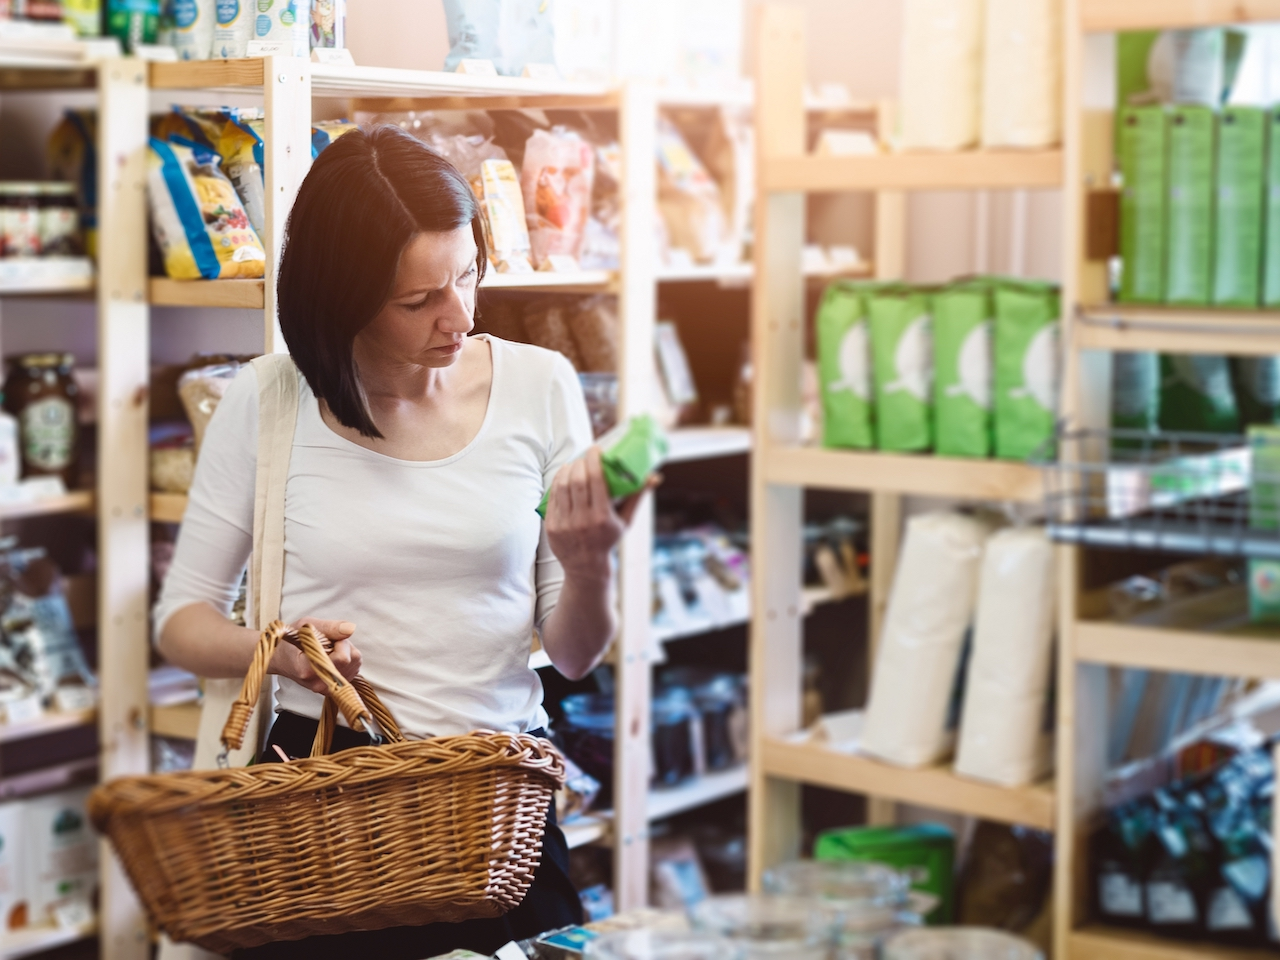 A photo of a woman scrutinizing the label on a package at a natural food store